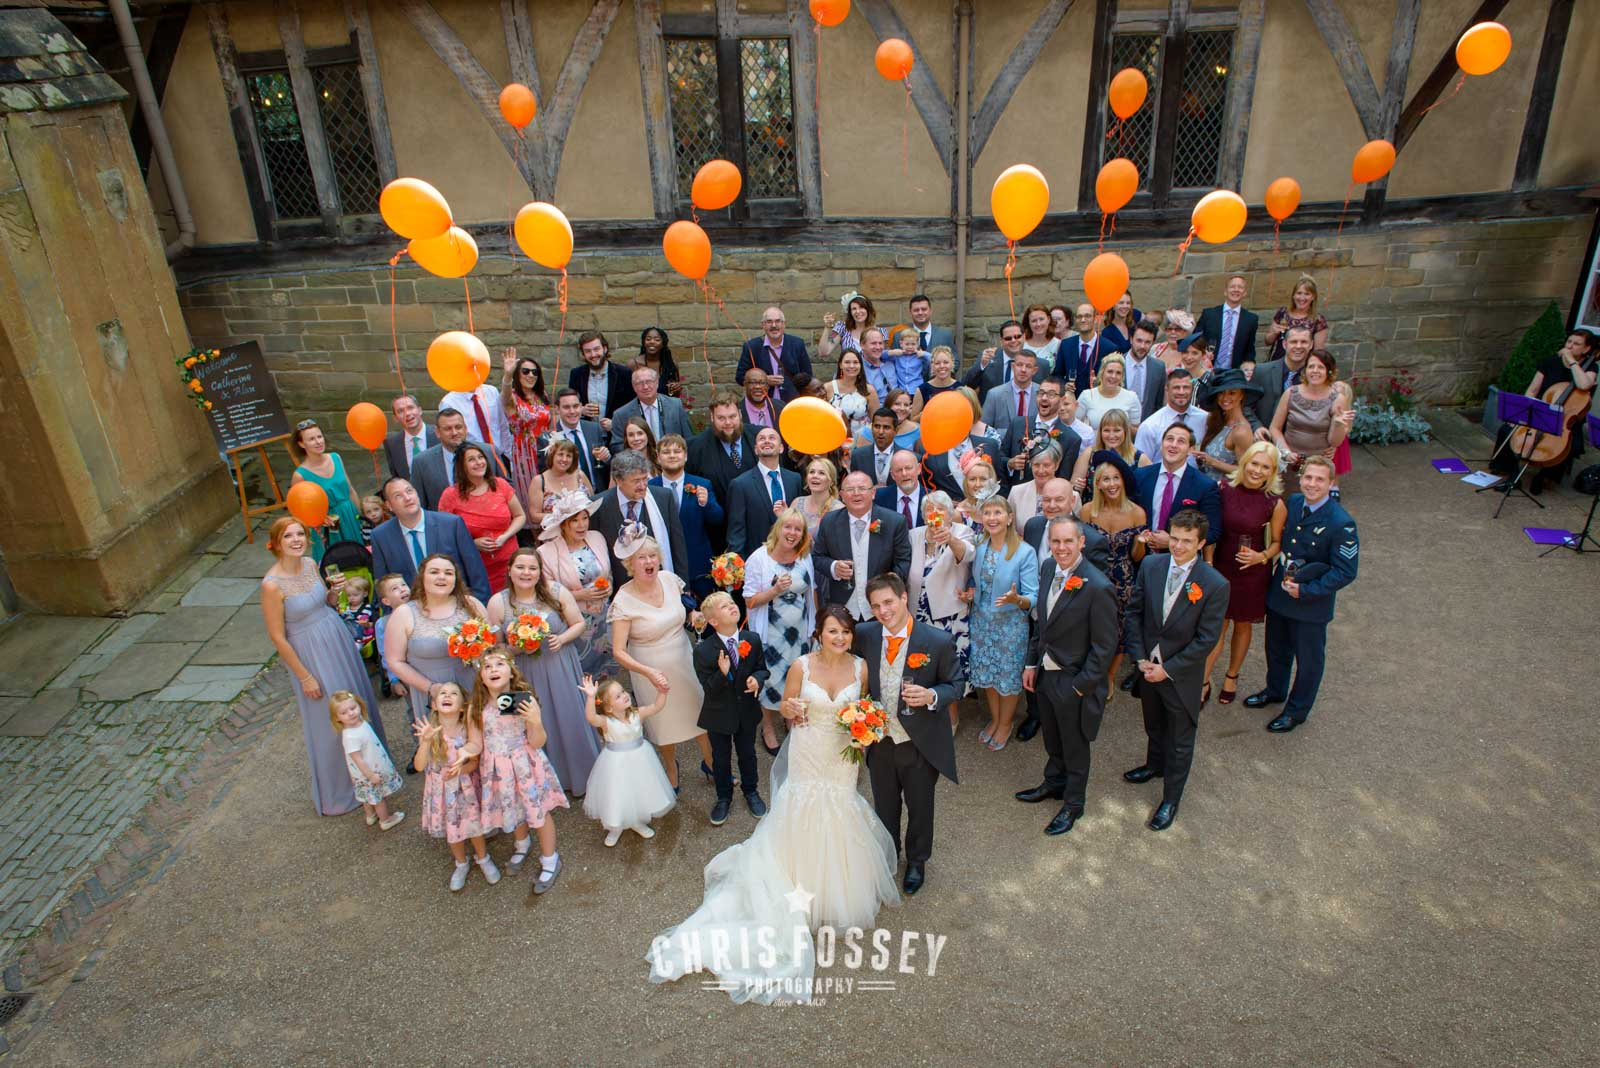 St Marys Warwick Lord Leycester Wedding Photographer by Chris Fossey Photography (8 of 16)